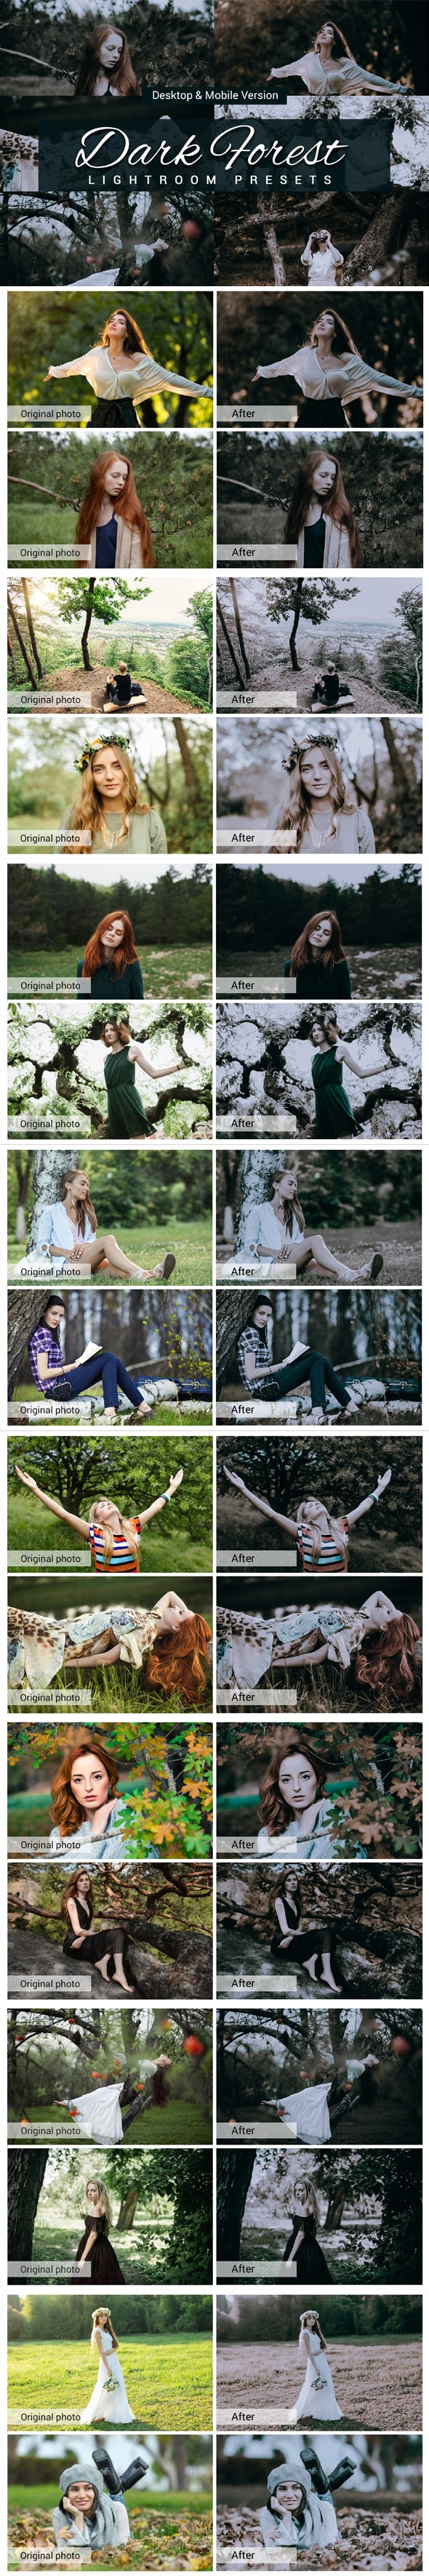 7500 New Complete Bundle Presets Lightroom, Photoshop Actions and Cinematic LUTs - Dark Forest Preview min